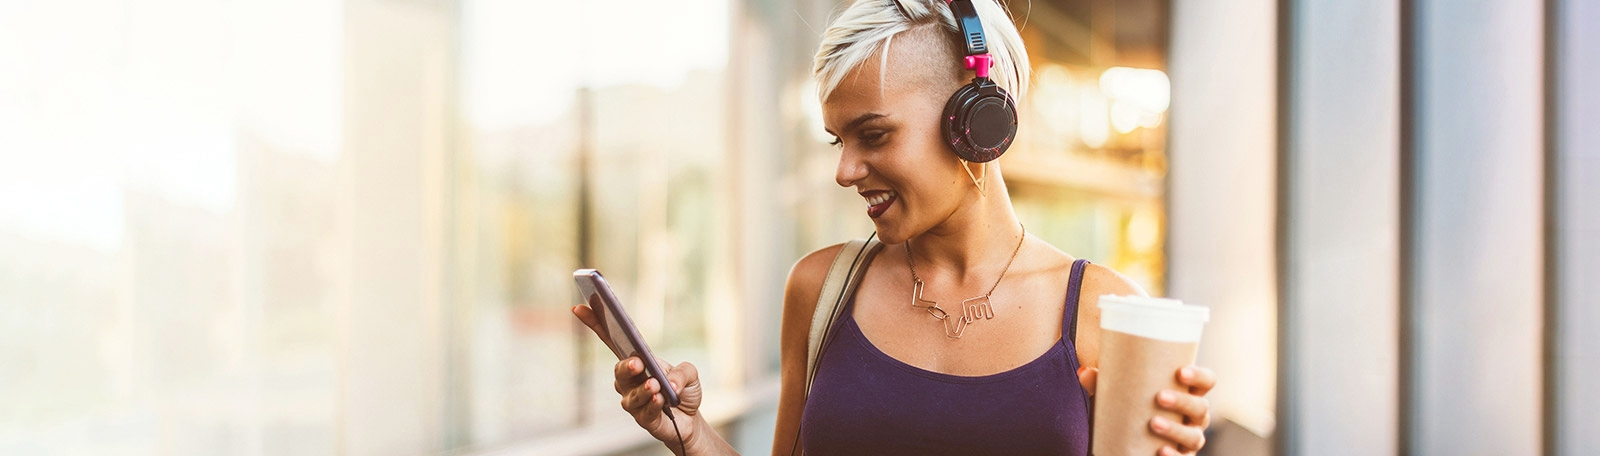 Pretty woman with short blonde hair and headphones checking her phone messages